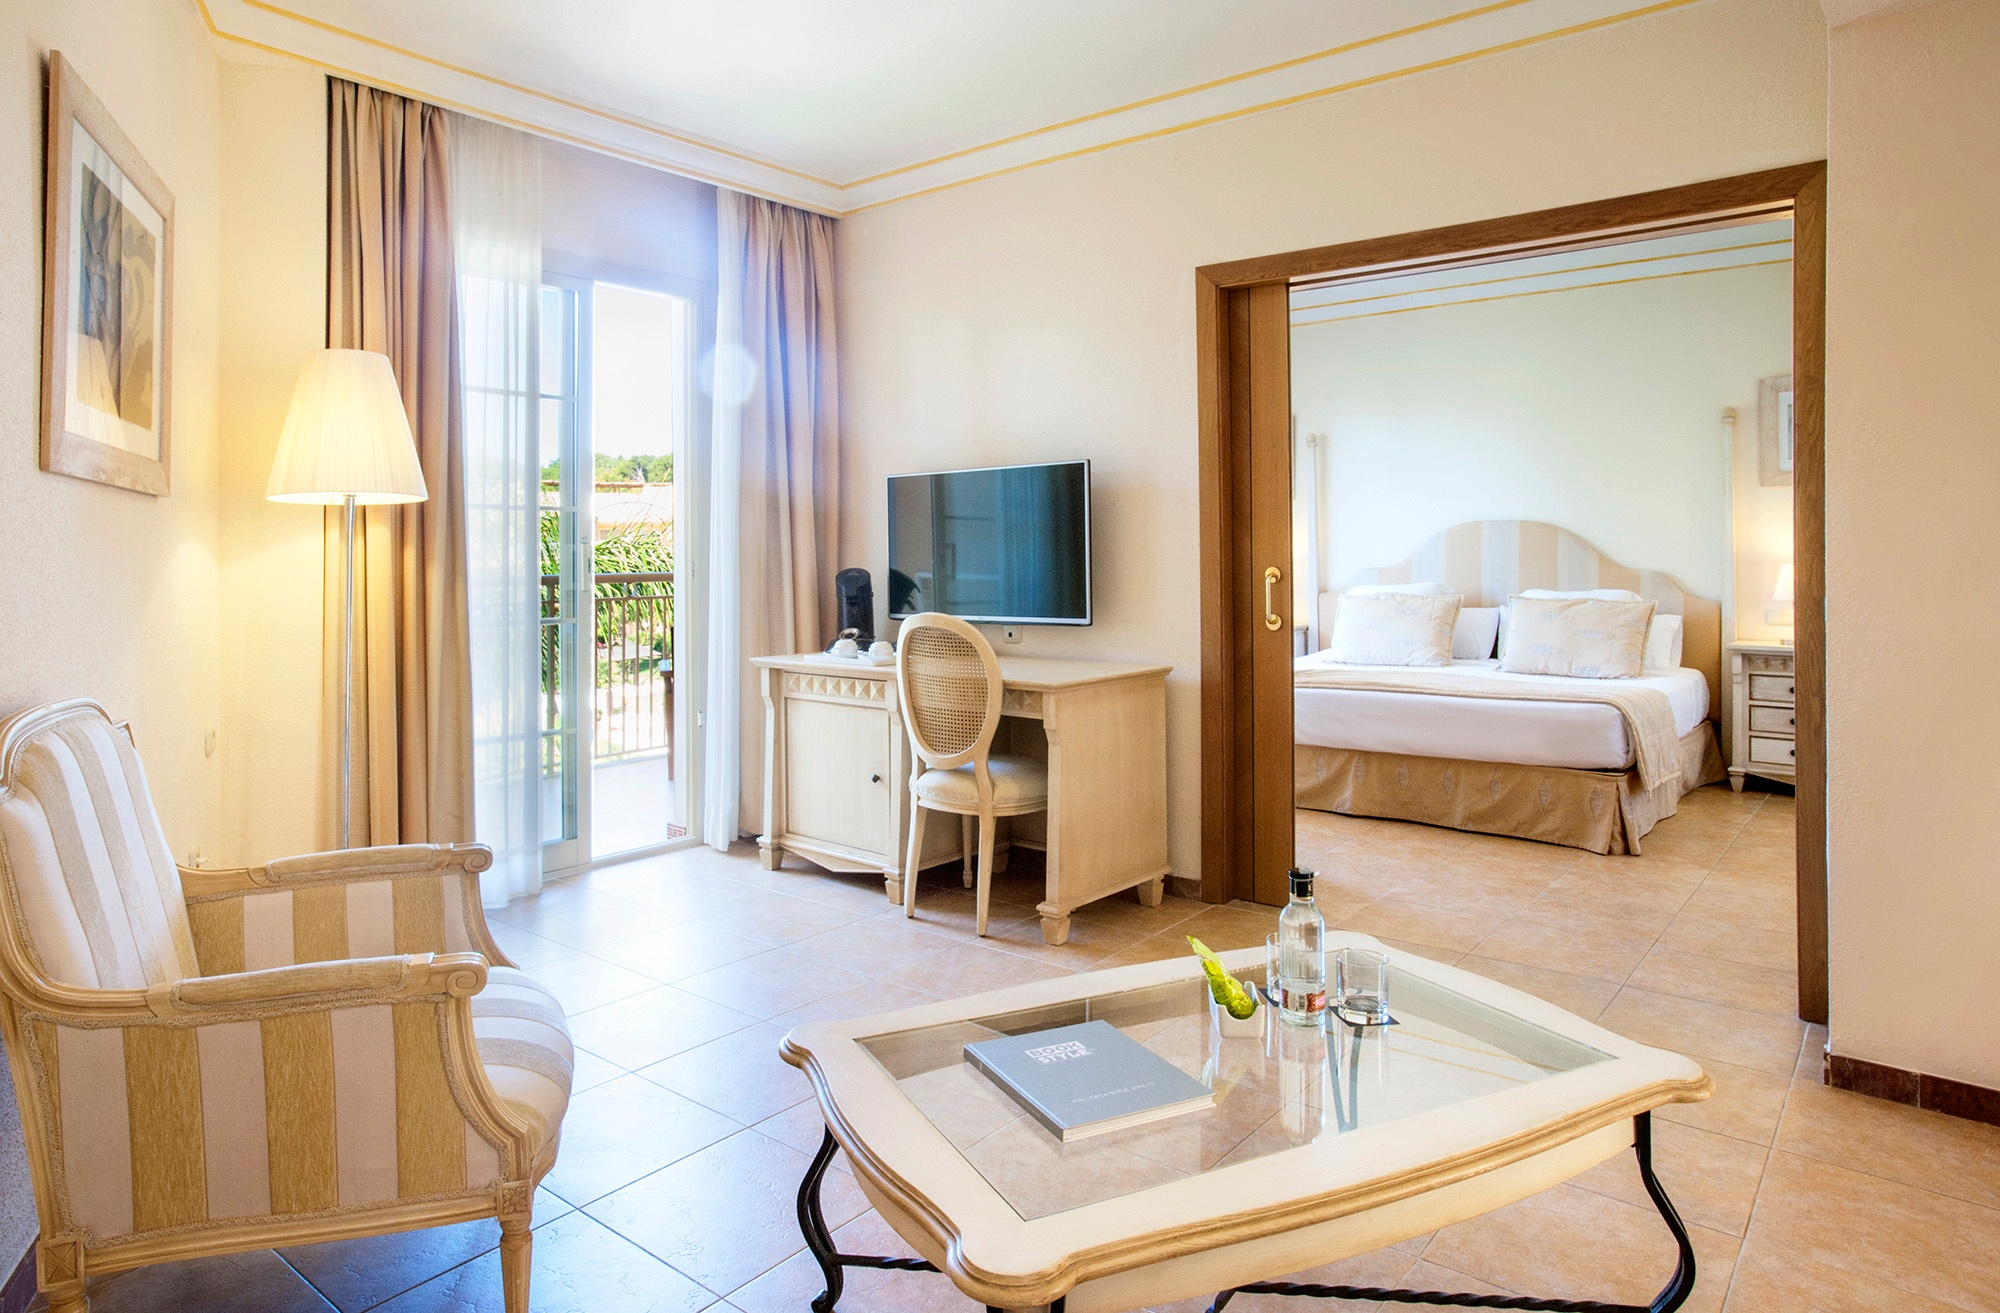 Suite & Spa Hotel Offers | Hotels VIVA